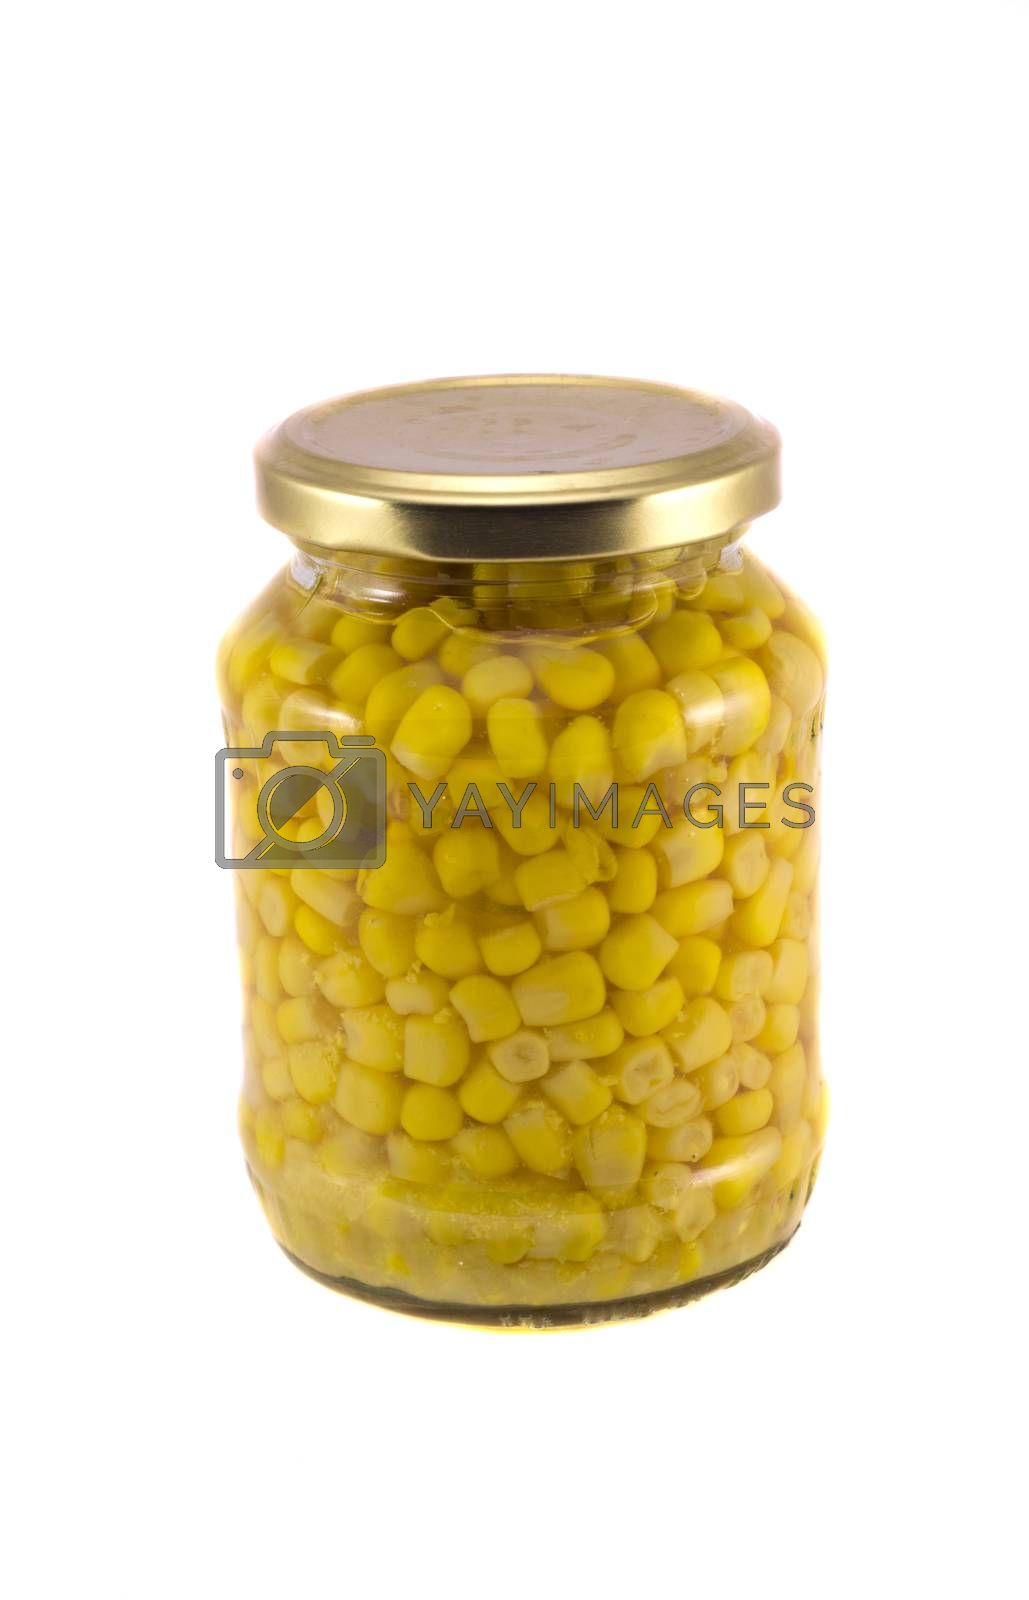 Royalty free image of glass jar with sweet ecological corn isolated on white by alis_photo